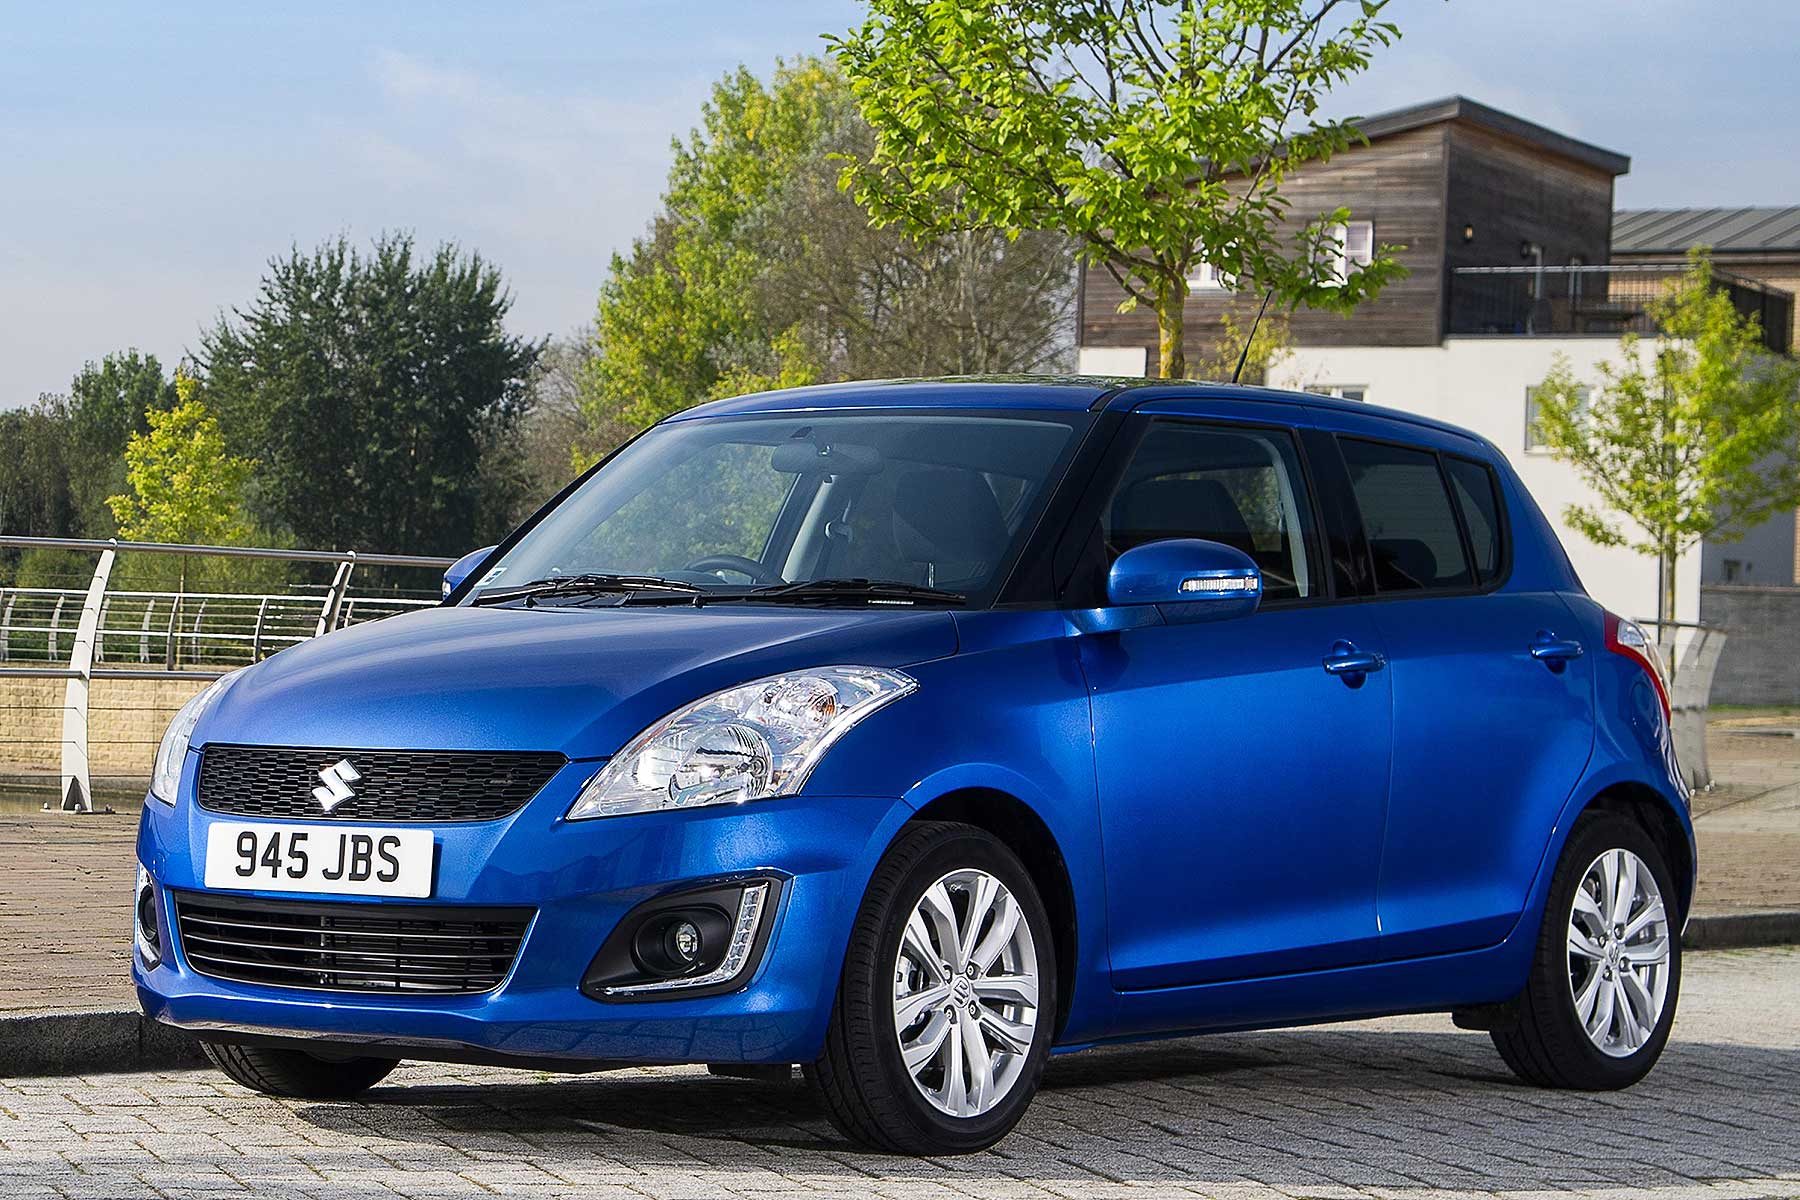 The cheapest cars to insure for 17-18 year olds: Suzuki Swift